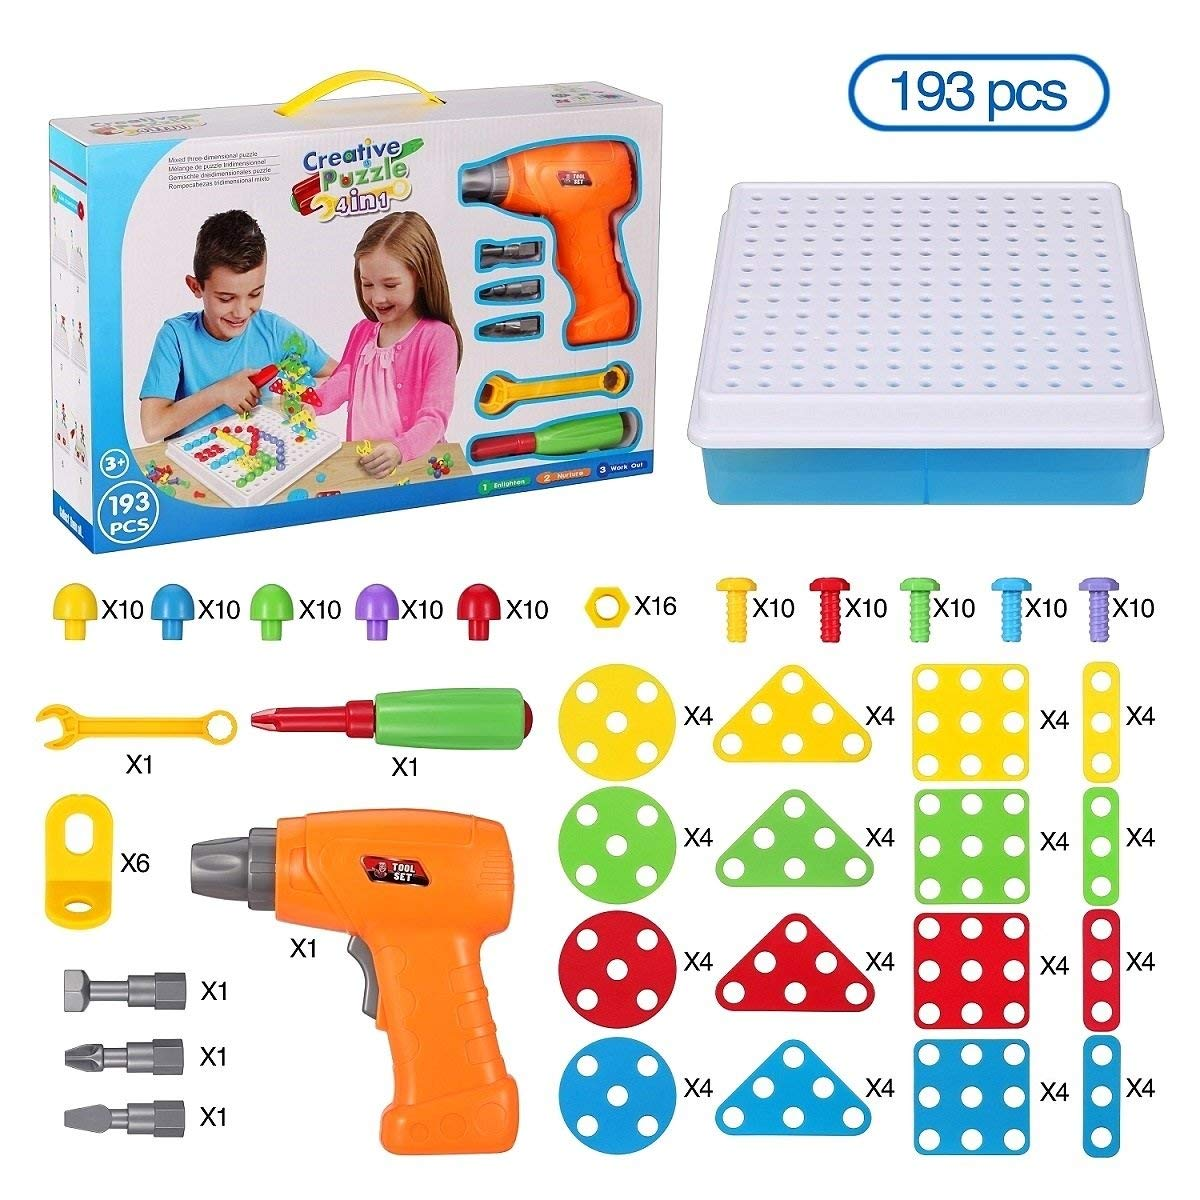 90f81c91a Get Quotations · SUPSTEM Kids Drill Screw Driver Tool Set Pretend Play Toy,  Creative Educational Drilling Game Playset